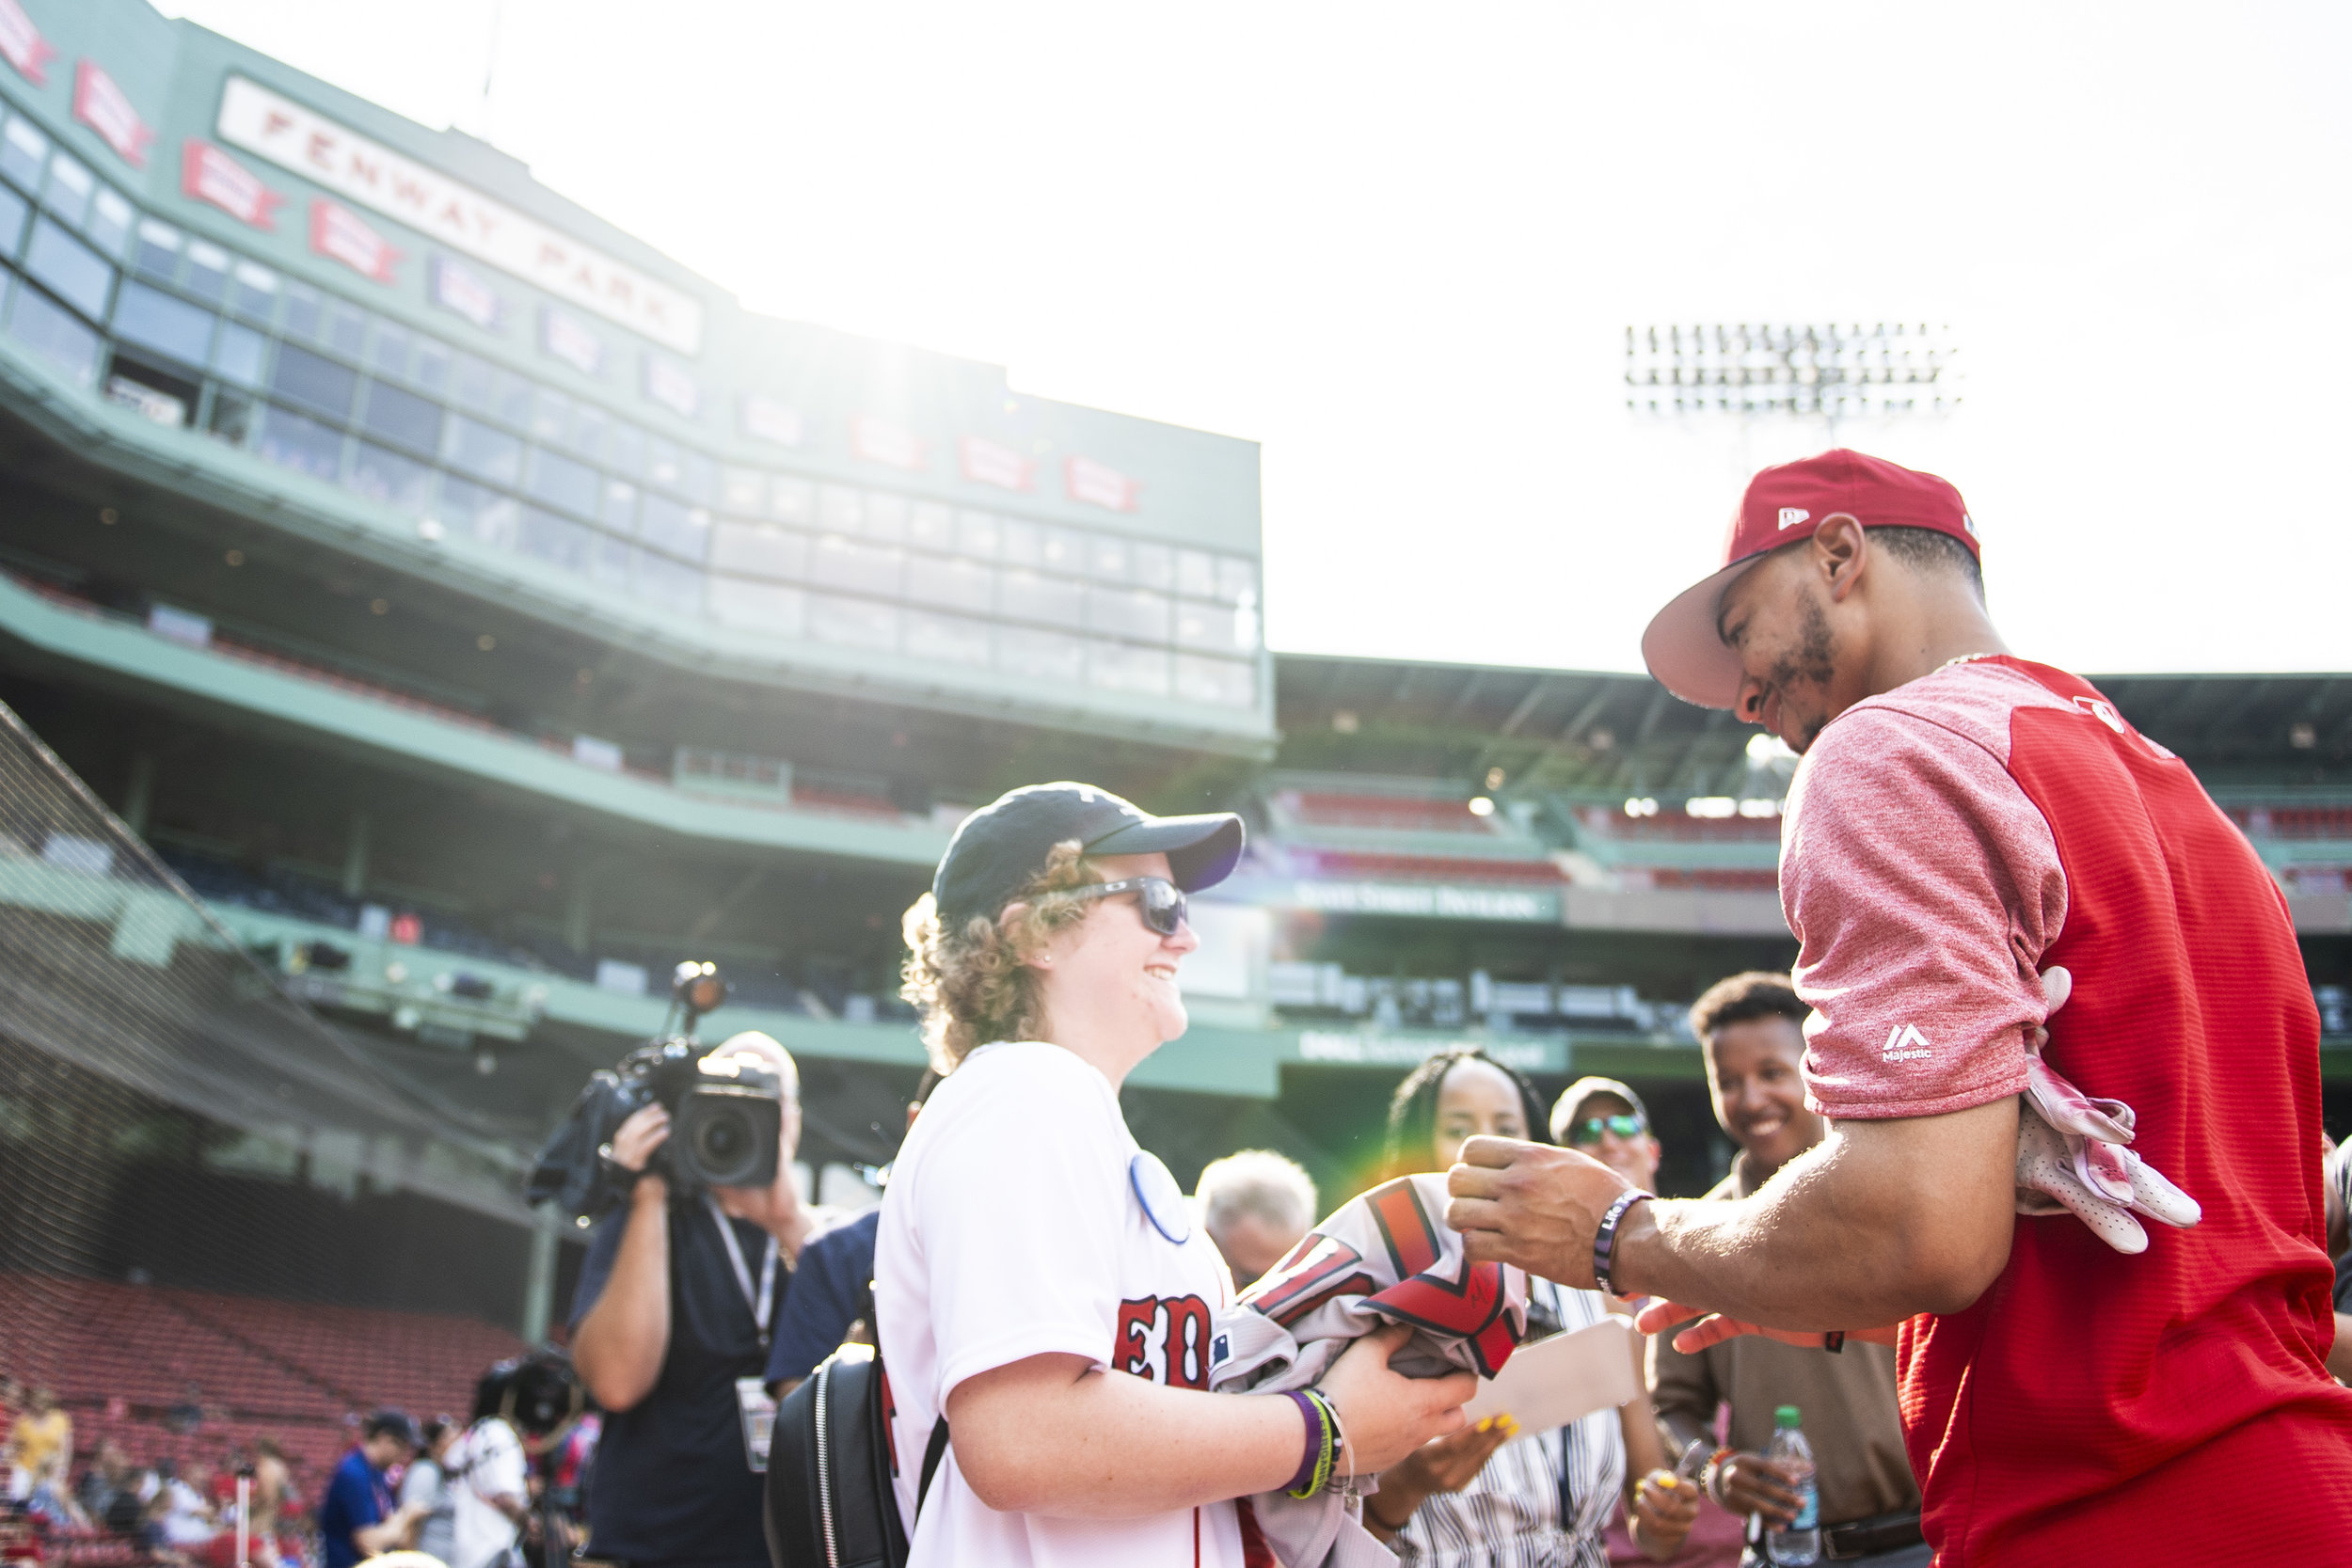 July 26, 2018, Boston, MA: Boston Red Sox outfielder Mookie Betts signs an autograph for a Make-A-Wish participant before the Boston Red Sox face the Minnesota Twins at Fenway Park in Boston, Massachusetts on Friday, July 27, 2018. (Photo by Matthew Thomas/Boston Red Sox)